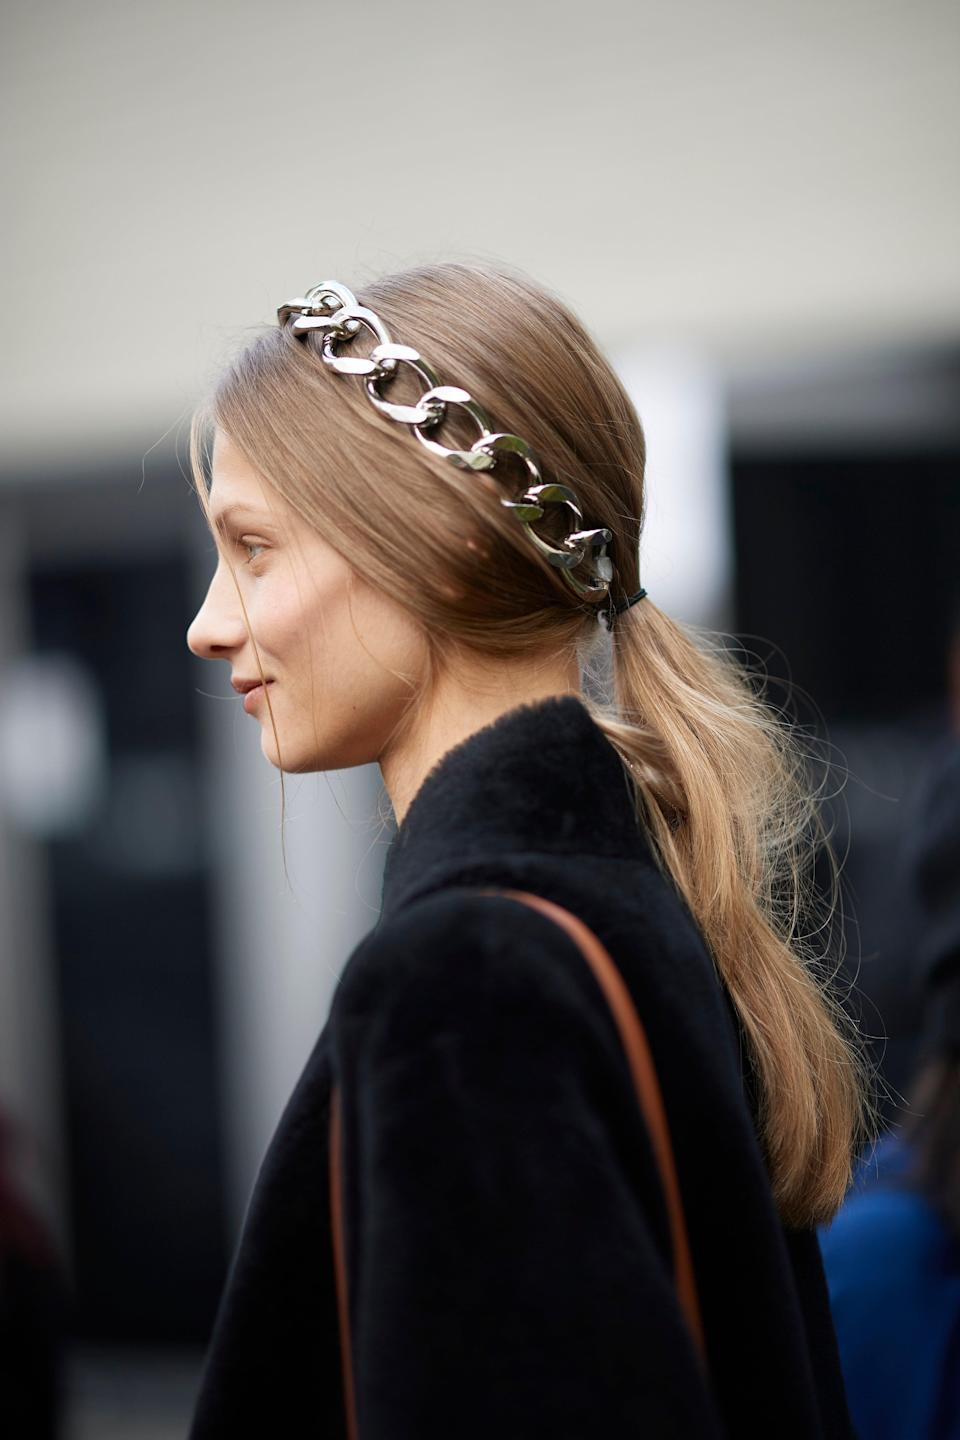 """There's no easier way to take a ponytail from basic to bold than adding a headband—and we've got <a href=""""https://www.glamour.com/gallery/best-hair-accessories?mbid=synd_yahoo_rss"""" rel=""""nofollow noopener"""" target=""""_blank"""" data-ylk=""""slk:plenty of favorites to choose from"""" class=""""link rapid-noclick-resp"""">plenty of favorites to choose from</a>."""